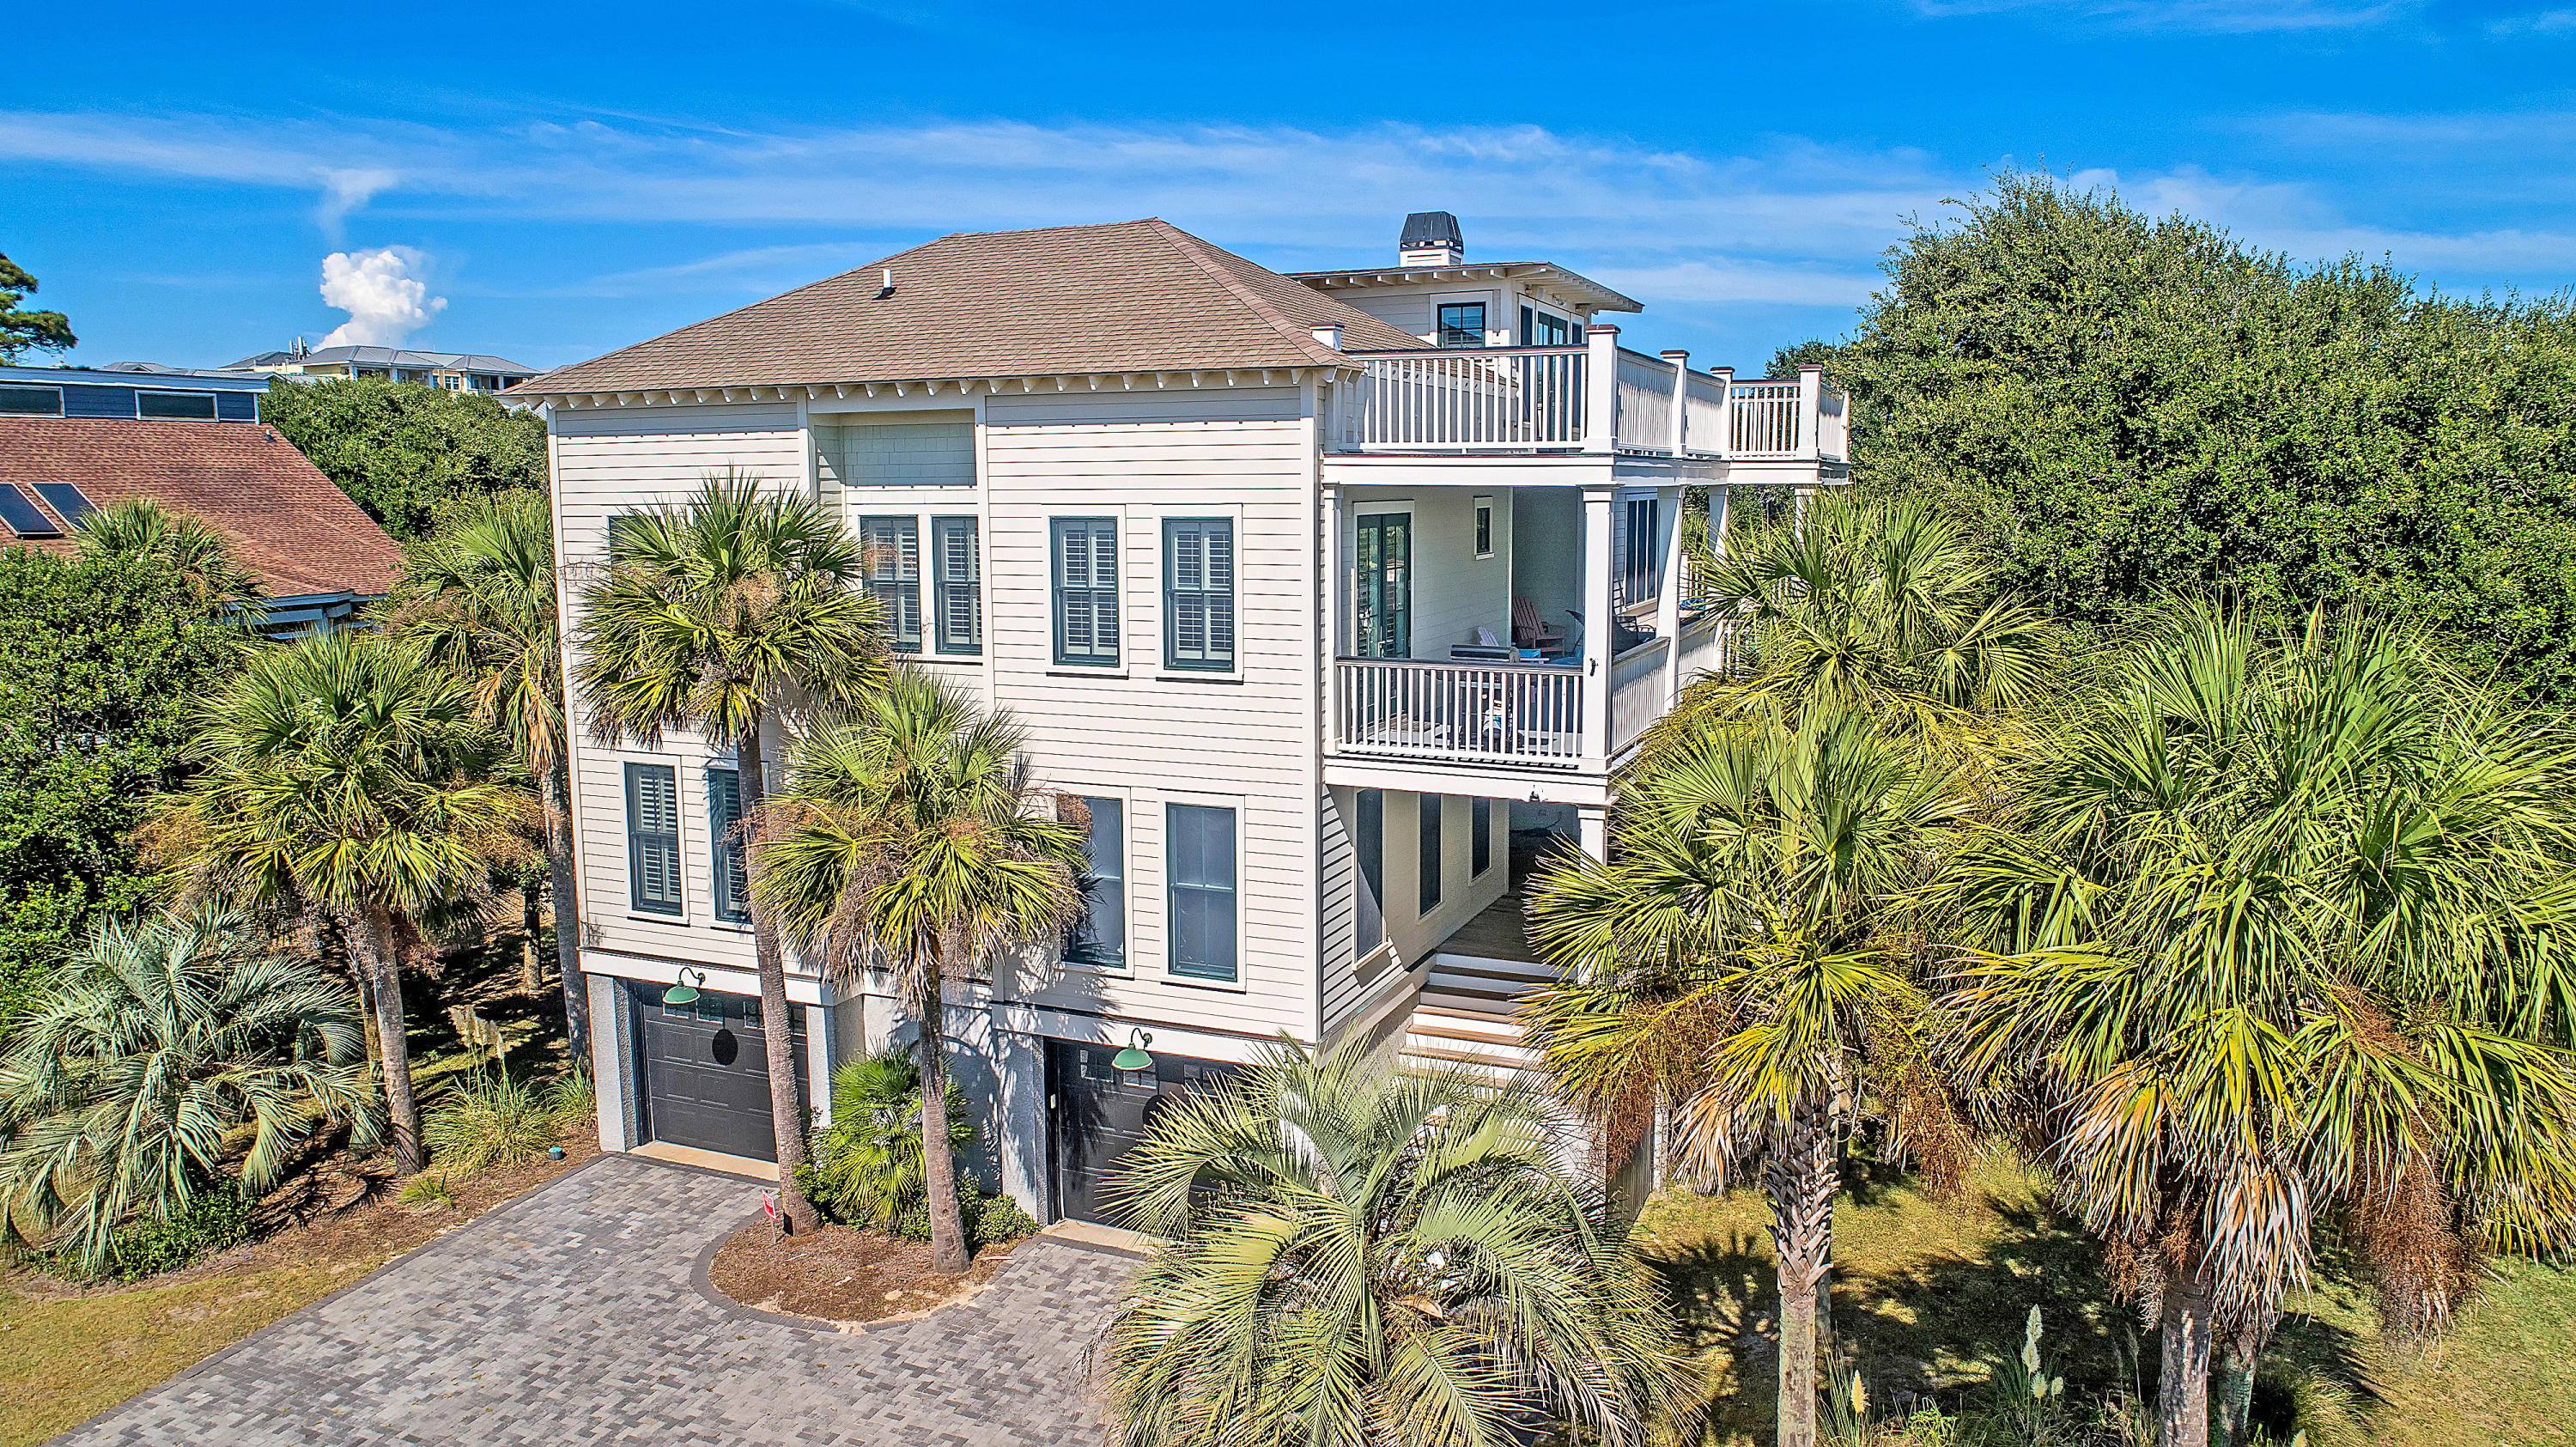 Isle of Palms Homes For Sale - 13 57th, Isle of Palms, SC - 67